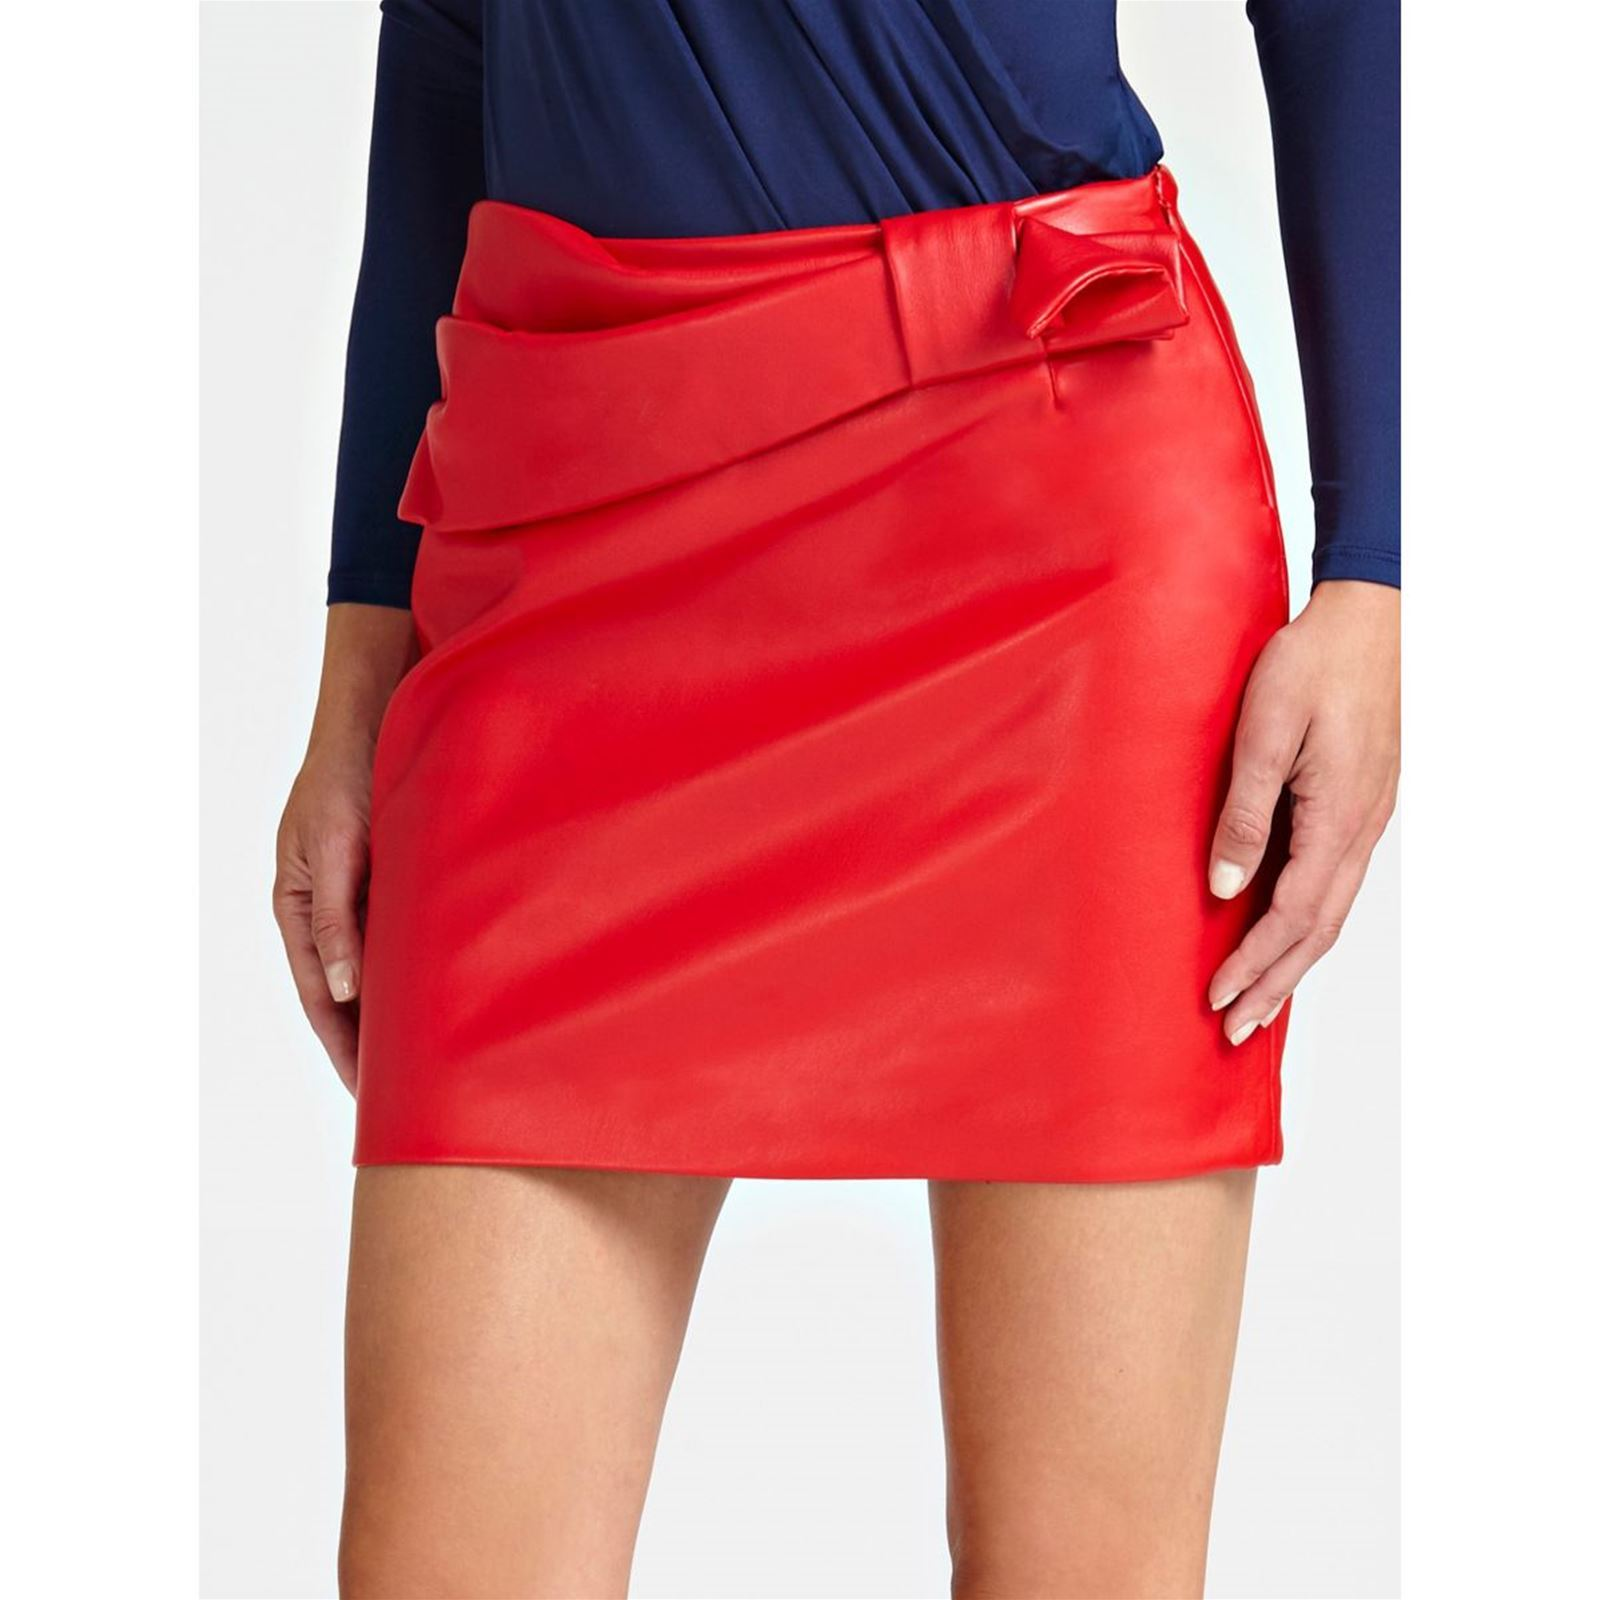 Enduit Brandalley Jupe Rouge Guess Effet 6xwgaE7